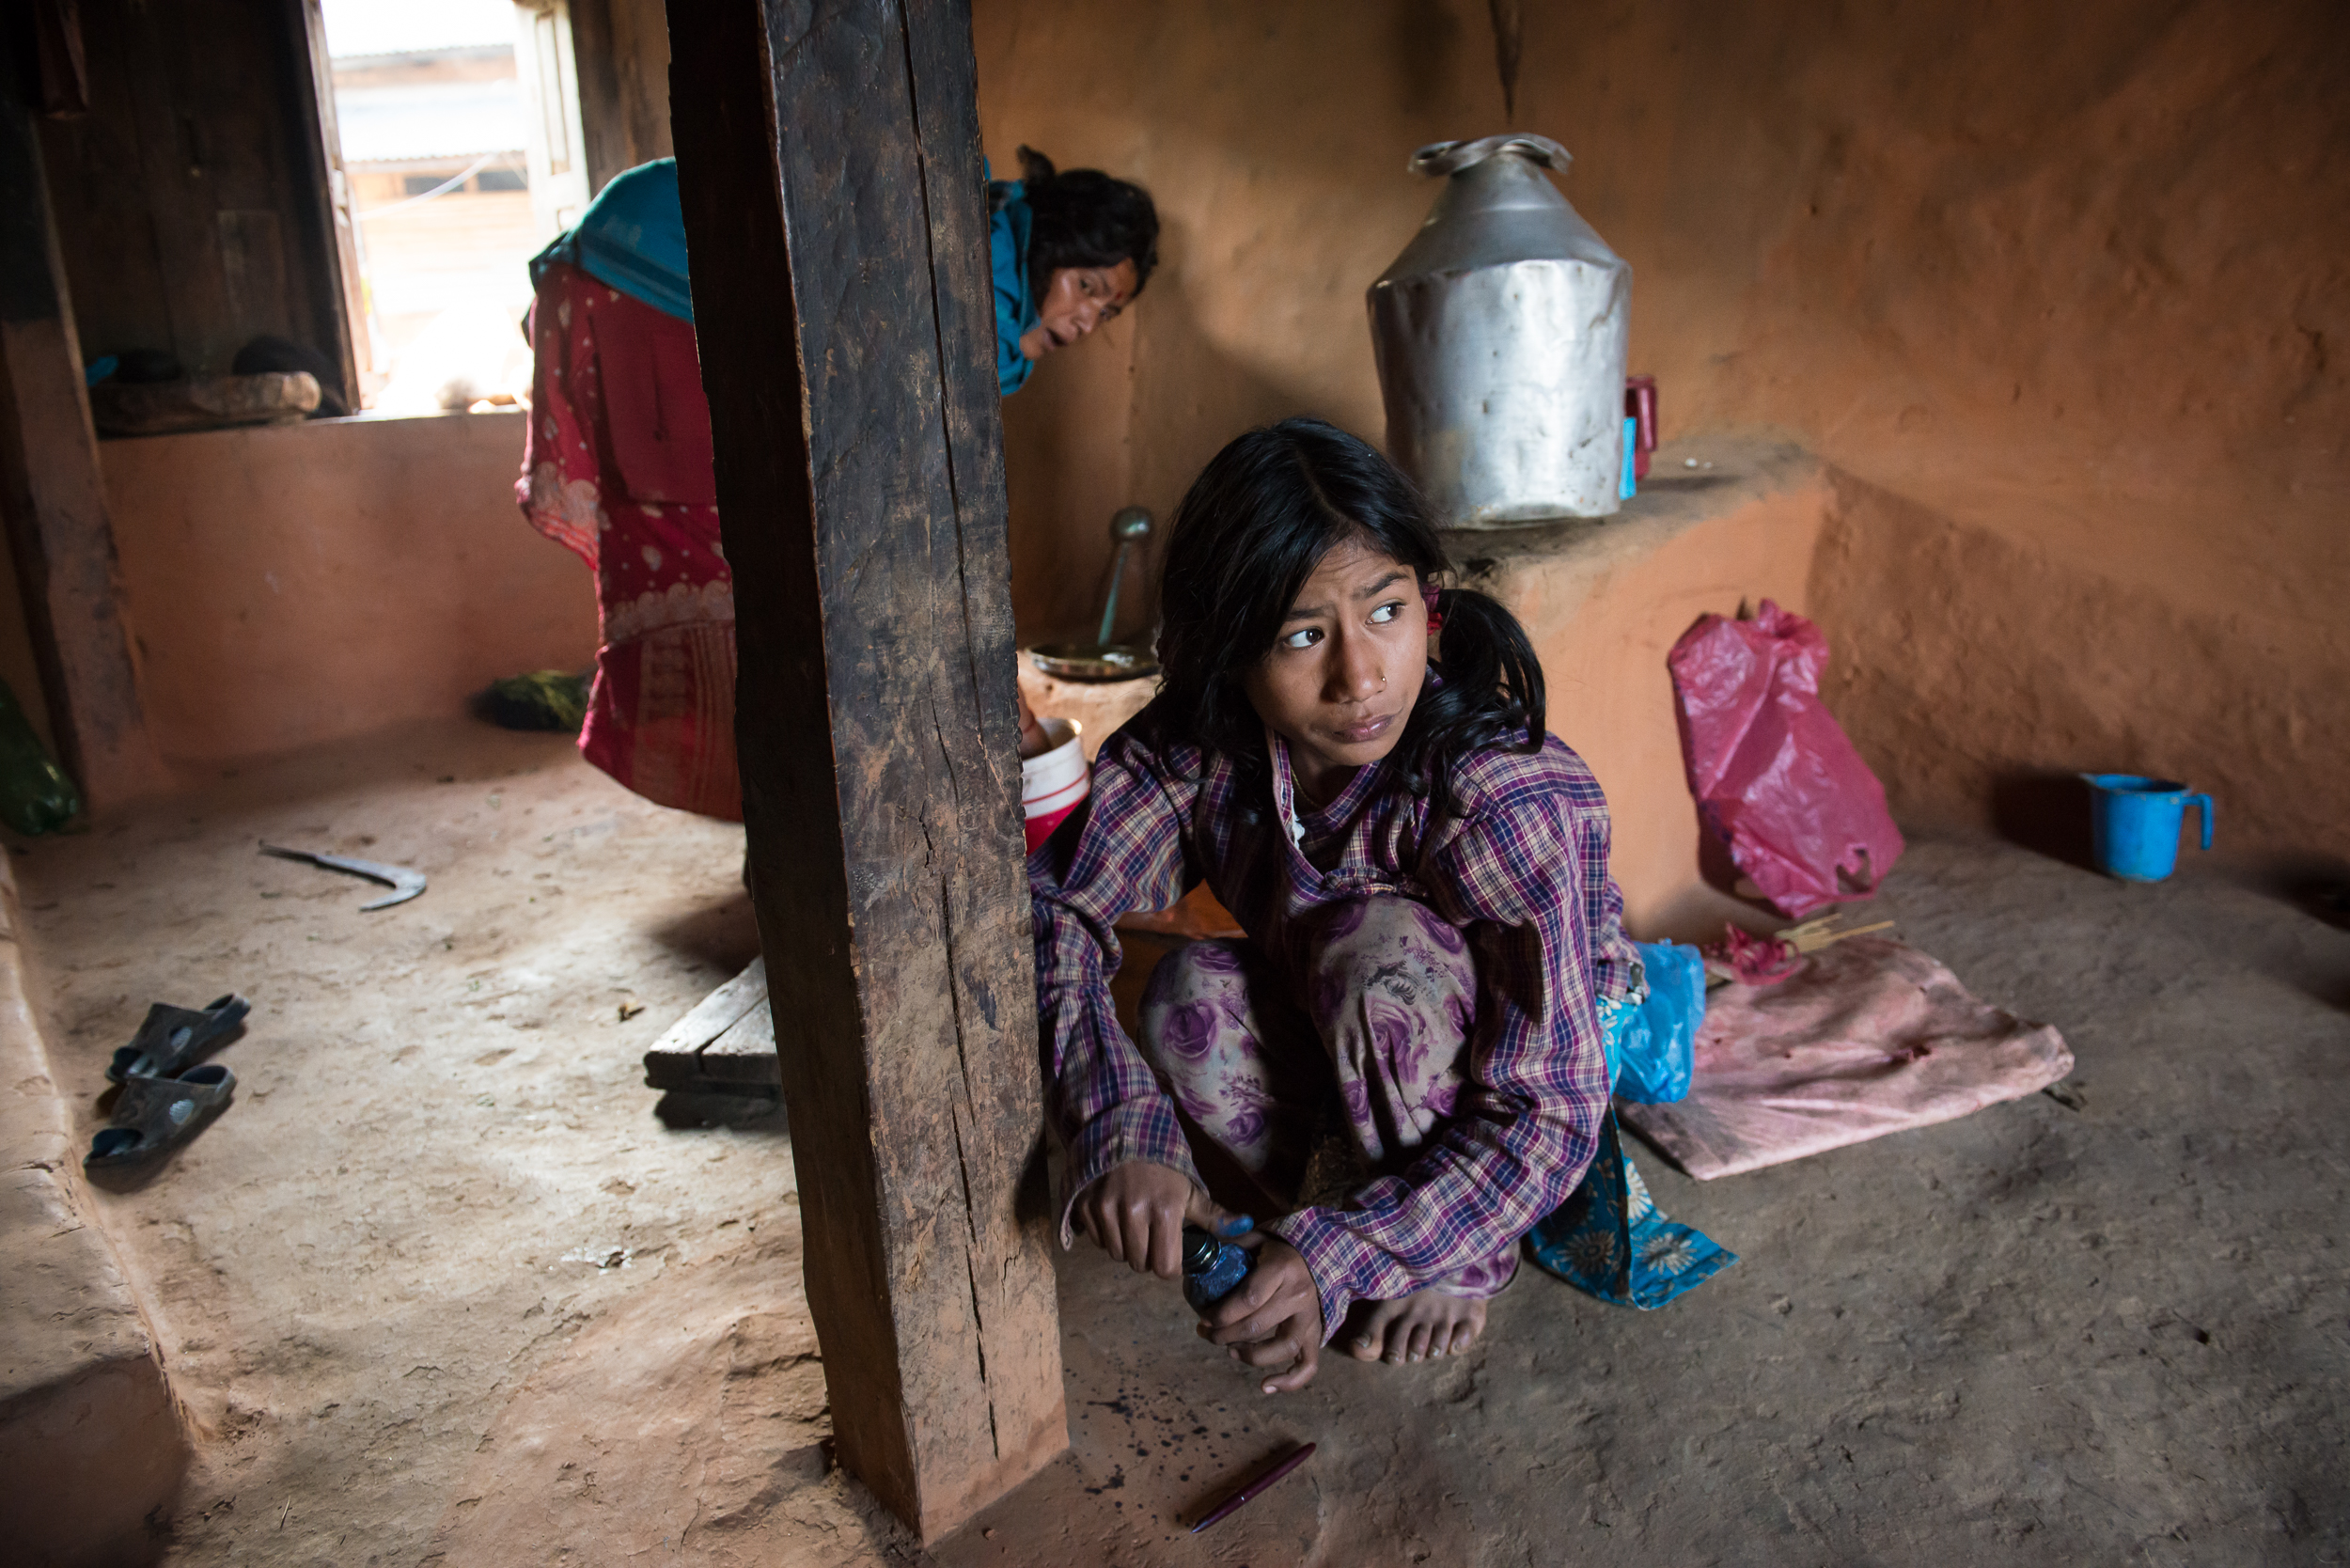 In addition to child care, Ganga and her older sister Jamuna are also responsible for cooking, laundry, and housework. Once all of those chores are finished, the girls can start on their schoolwork.